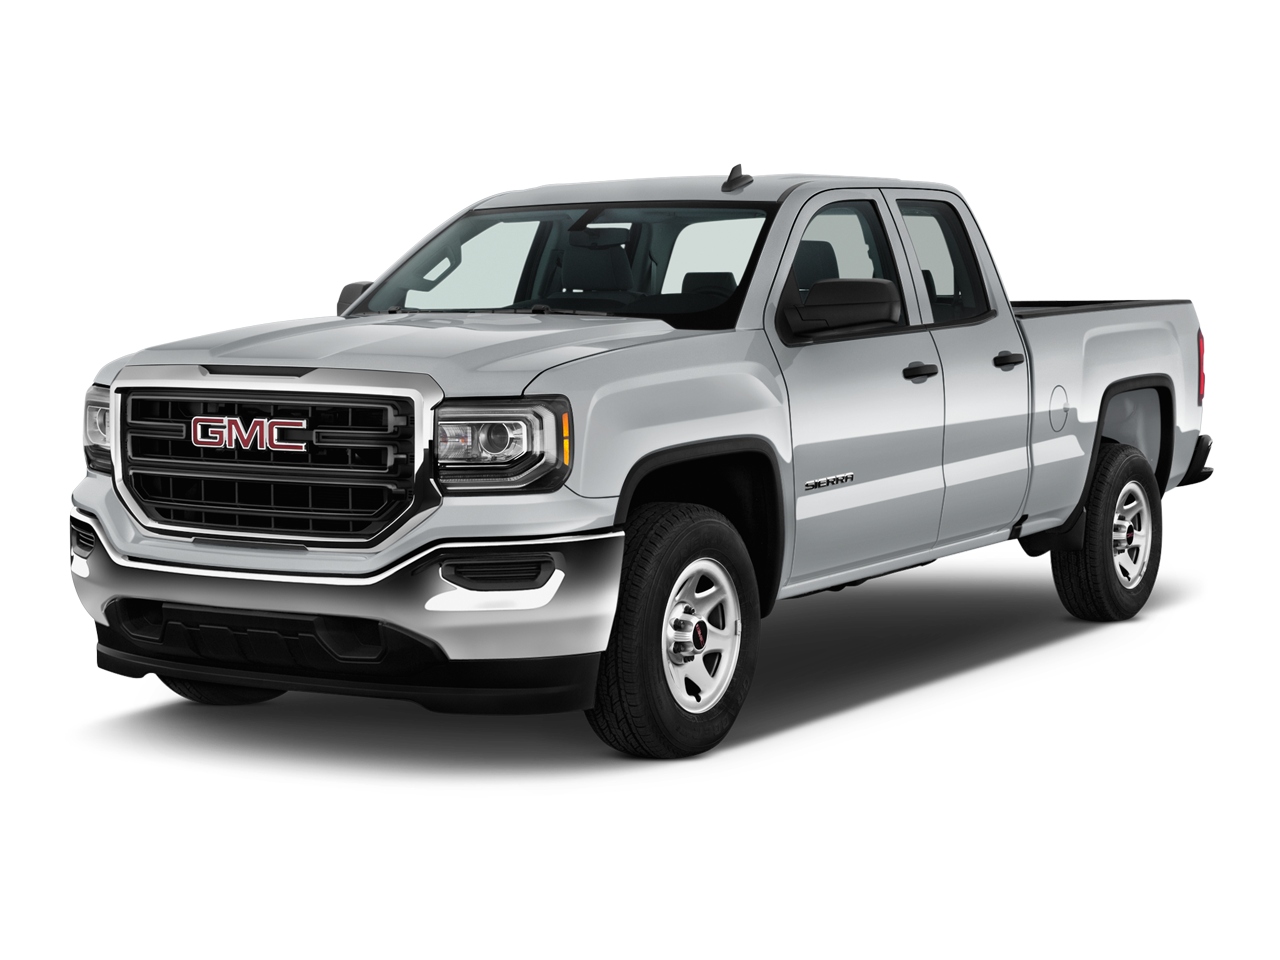 new 2017 gmc sierra 1500 sle near highland mi family deal. Black Bedroom Furniture Sets. Home Design Ideas